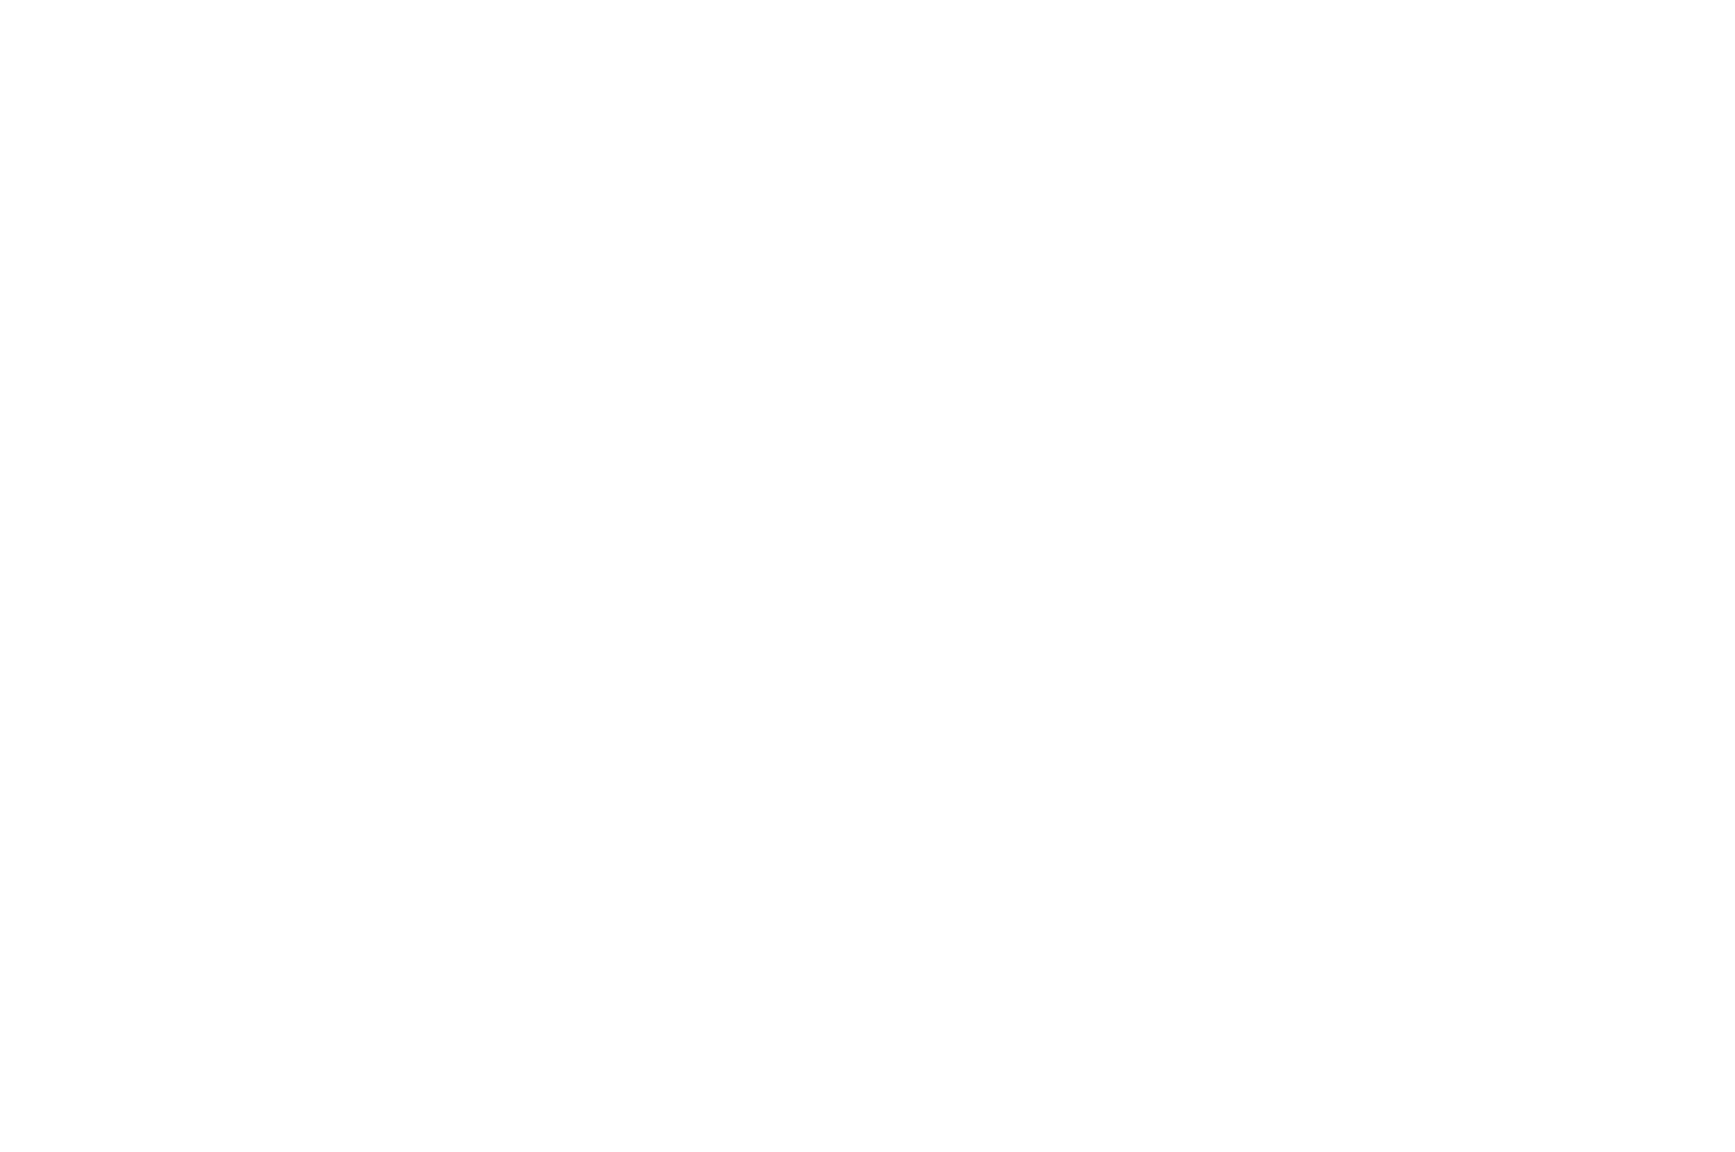 OFFICIAL SELECTION - The Psychedelic Film and Music  Festival - 2018 (1)_low_opacity.png